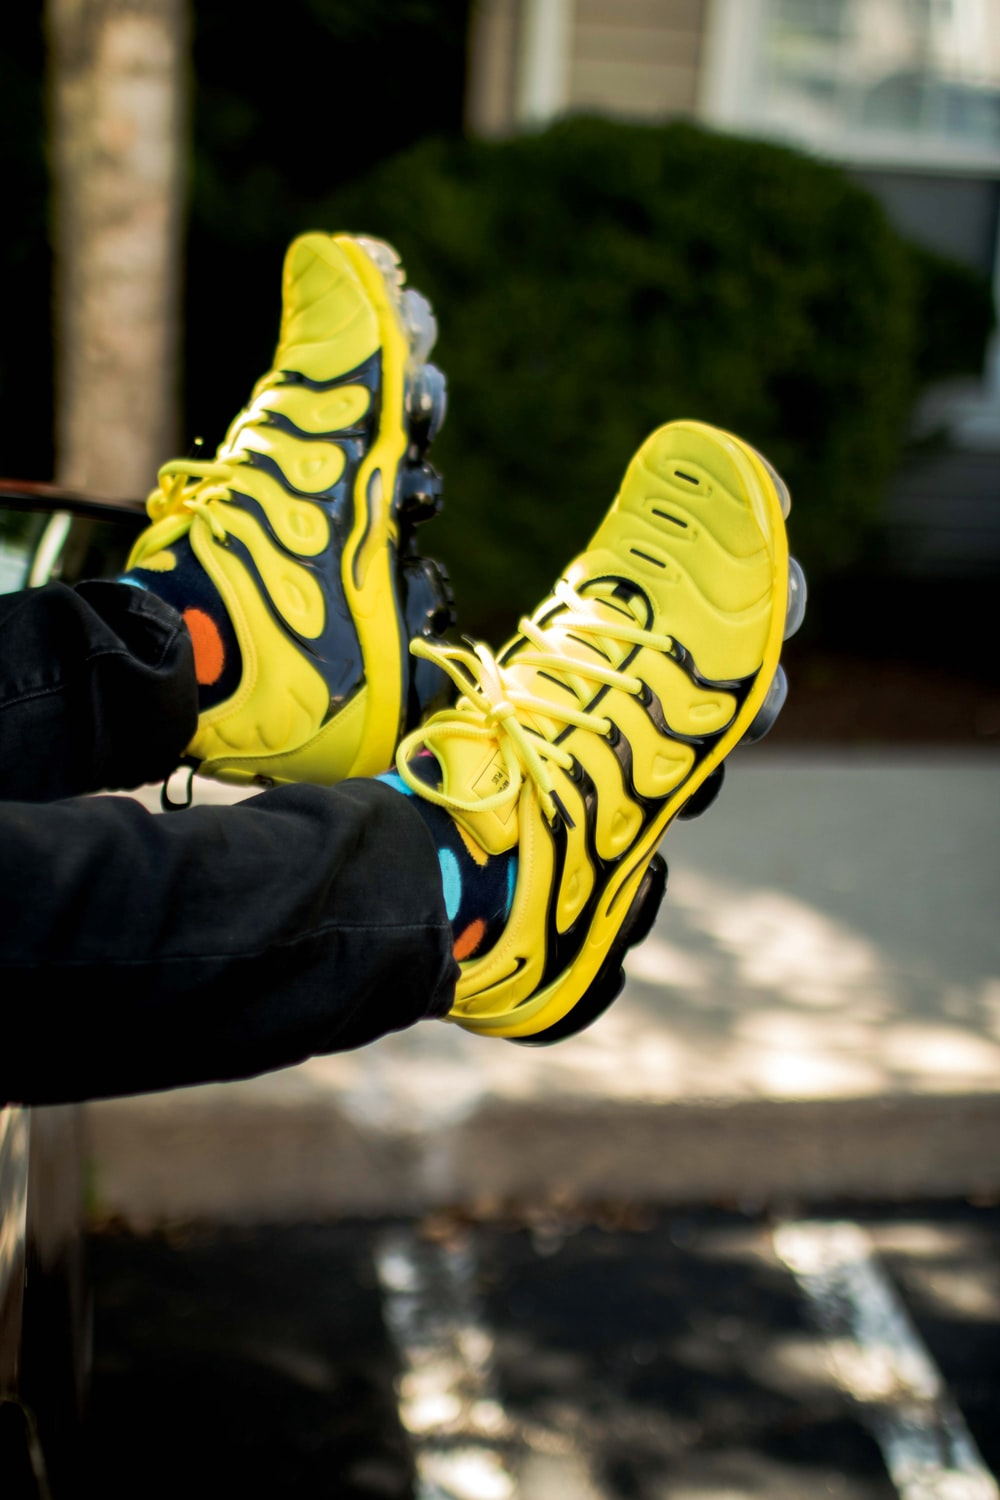 person wearing yellow-and-black Nike basketball shoes